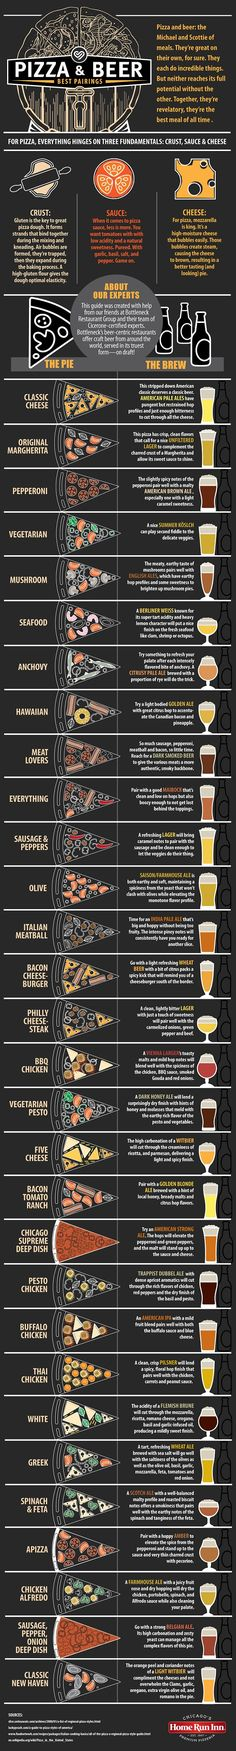 Ever wonder which beer pairs best with your favorite pizza? Browse through Home Run Inn Pizza's Ultimate Pizza & Beer Pairing Guide. Pizza And Beer, All Beer, Wine And Beer, Best Beer, Beer Brewing, Home Brewing, Menue Design, Beer Pairing, Food Pairing